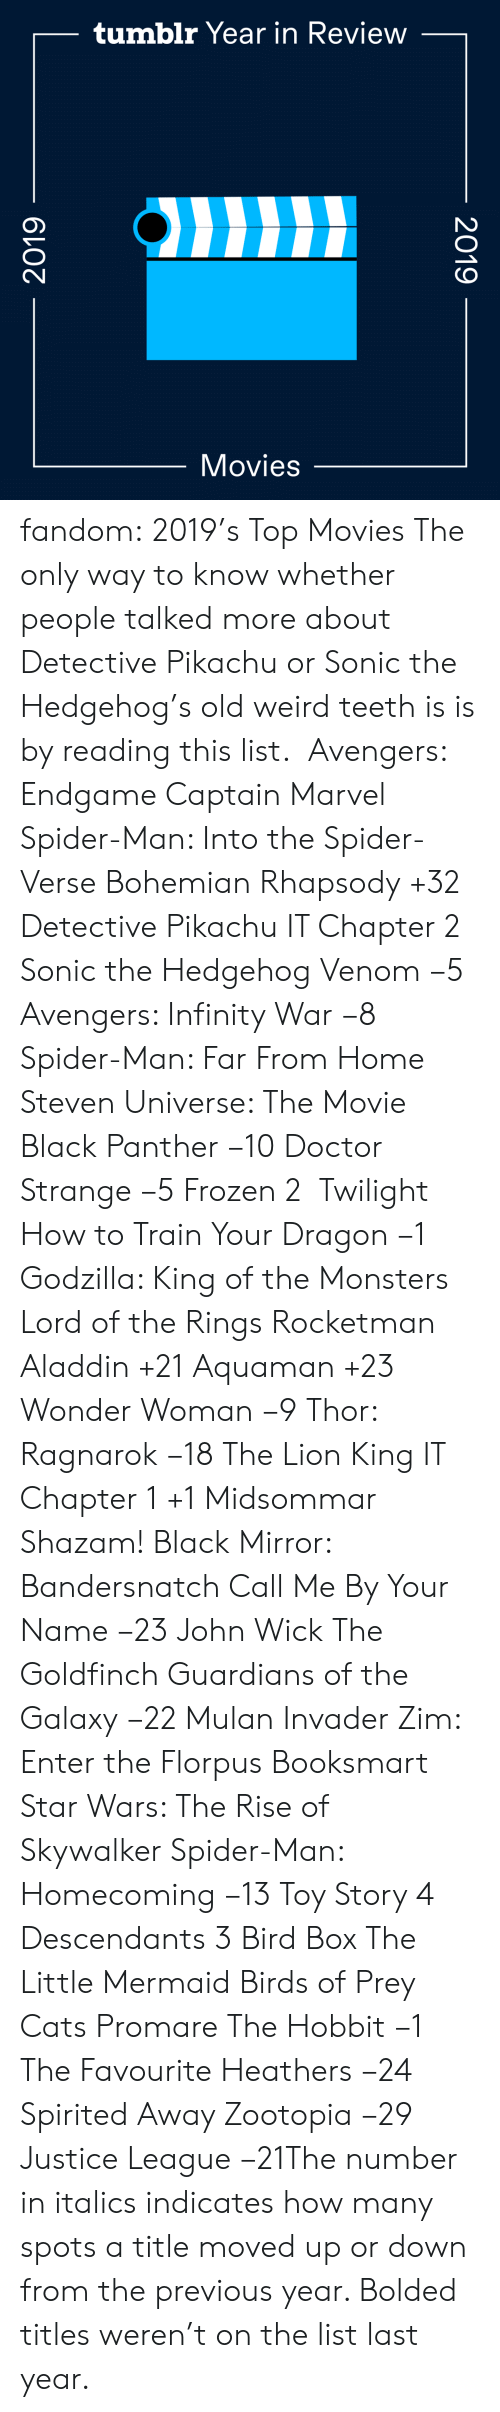 Godzilla: tumblr Year in Review  Movies  2019  2019 fandom:  2019's Top Movies  The only way to know whether people talked more about Detective Pikachu or Sonic the Hedgehog's old weird teeth is is by reading this list.   Avengers: Endgame  Captain Marvel  Spider-Man: Into the Spider-Verse  Bohemian Rhapsody +32  Detective Pikachu  IT Chapter 2  Sonic the Hedgehog  Venom −5  Avengers: Infinity War −8  Spider-Man: Far From Home  Steven Universe: The Movie  Black Panther −10  Doctor Strange −5  Frozen 2   Twilight  How to Train Your Dragon −1  Godzilla: King of the Monsters  Lord of the Rings  Rocketman  Aladdin +21  Aquaman +23  Wonder Woman −9  Thor: Ragnarok −18  The Lion King  IT Chapter 1 +1  Midsommar  Shazam!  Black Mirror: Bandersnatch  Call Me By Your Name −23  John Wick  The Goldfinch  Guardians of the Galaxy −22  Mulan  Invader Zim: Enter the Florpus  Booksmart  Star Wars: The Rise of Skywalker  Spider-Man: Homecoming −13  Toy Story 4  Descendants 3  Bird Box  The Little Mermaid  Birds of Prey  Cats  Promare  The Hobbit −1  The Favourite  Heathers −24  Spirited Away  Zootopia −29 Justice League −21The number in italics indicates how many spots a title moved up or down from the previous year. Bolded titles weren't on the list last year.